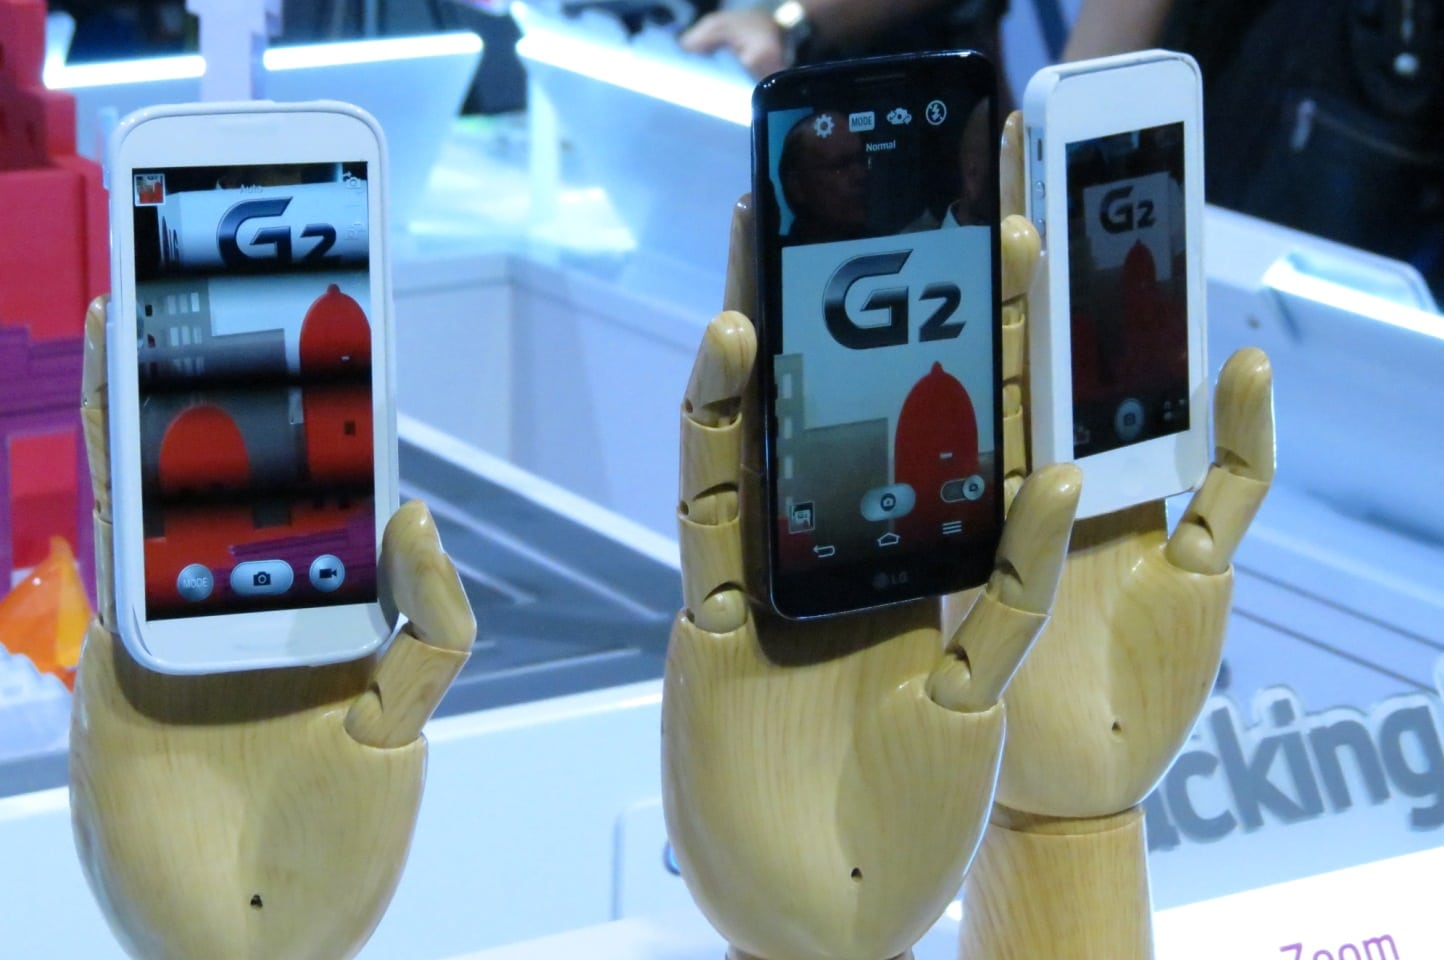 LG G2 and its Rivals